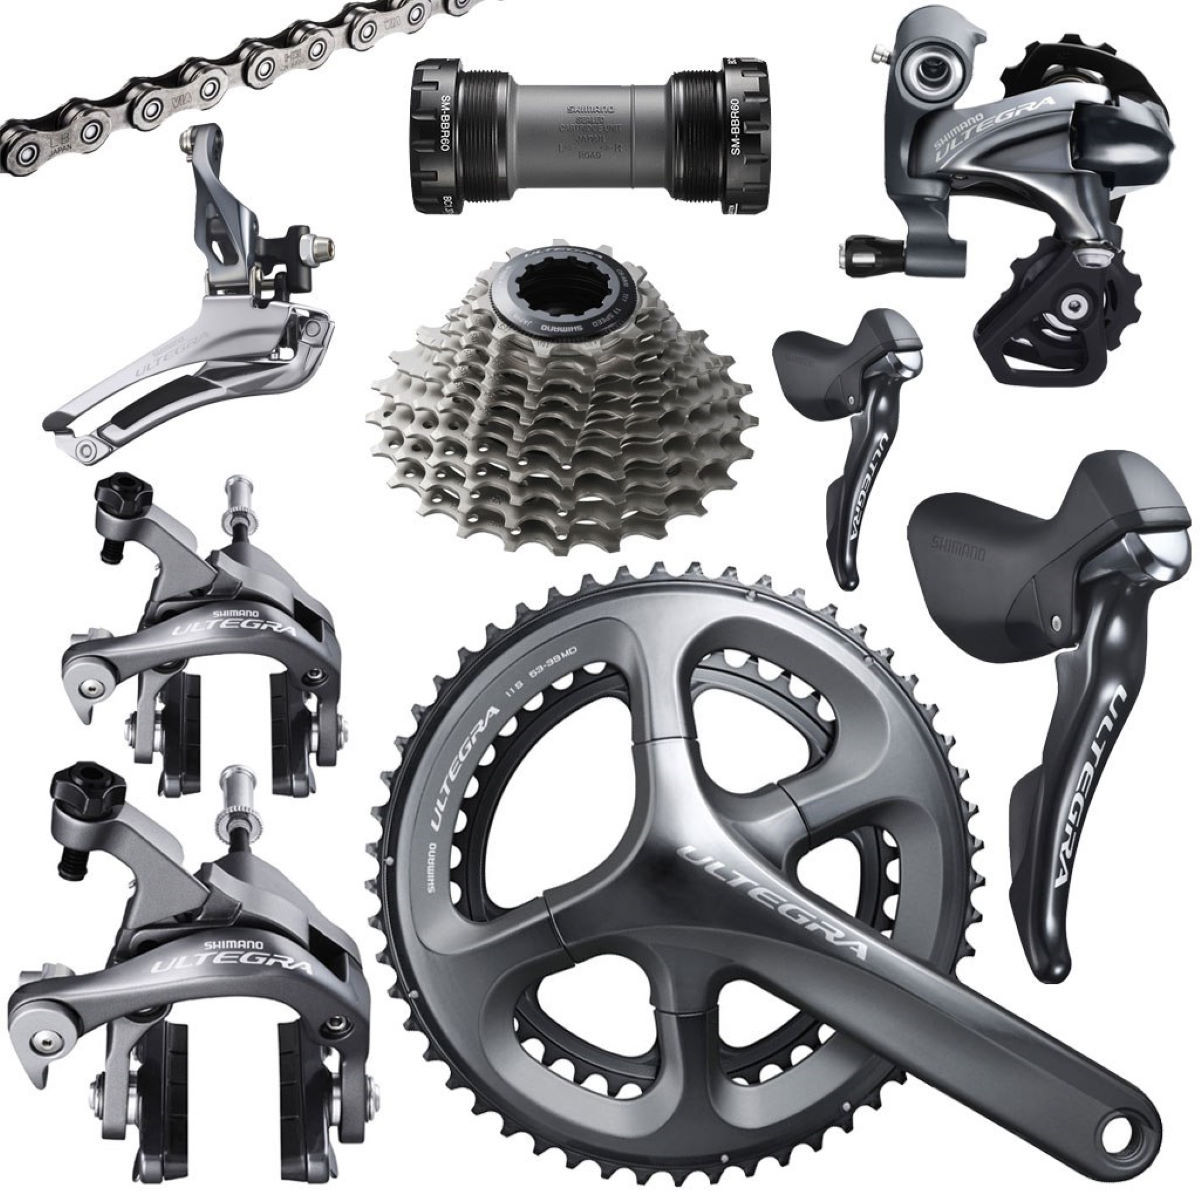 Shimano 6800 Ultegra 11 Speed Groupset